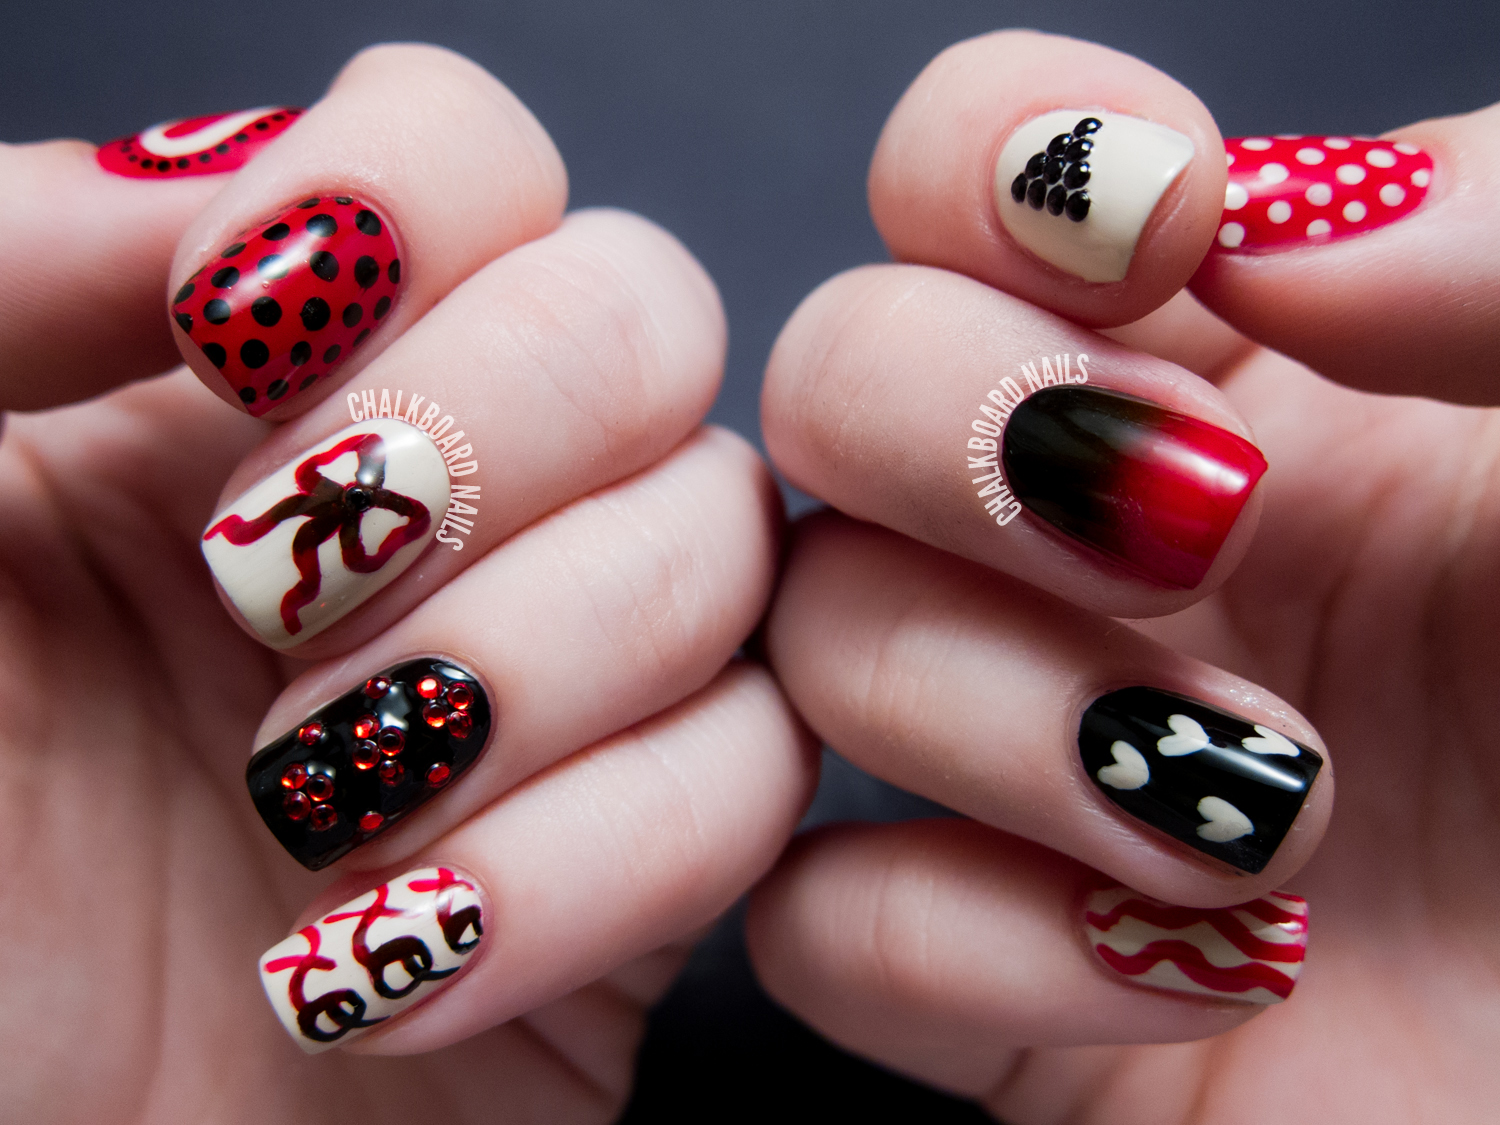 31DC2013 Day 01: Red Mix and Match | Chalkboard Nails | Nail Art Blog